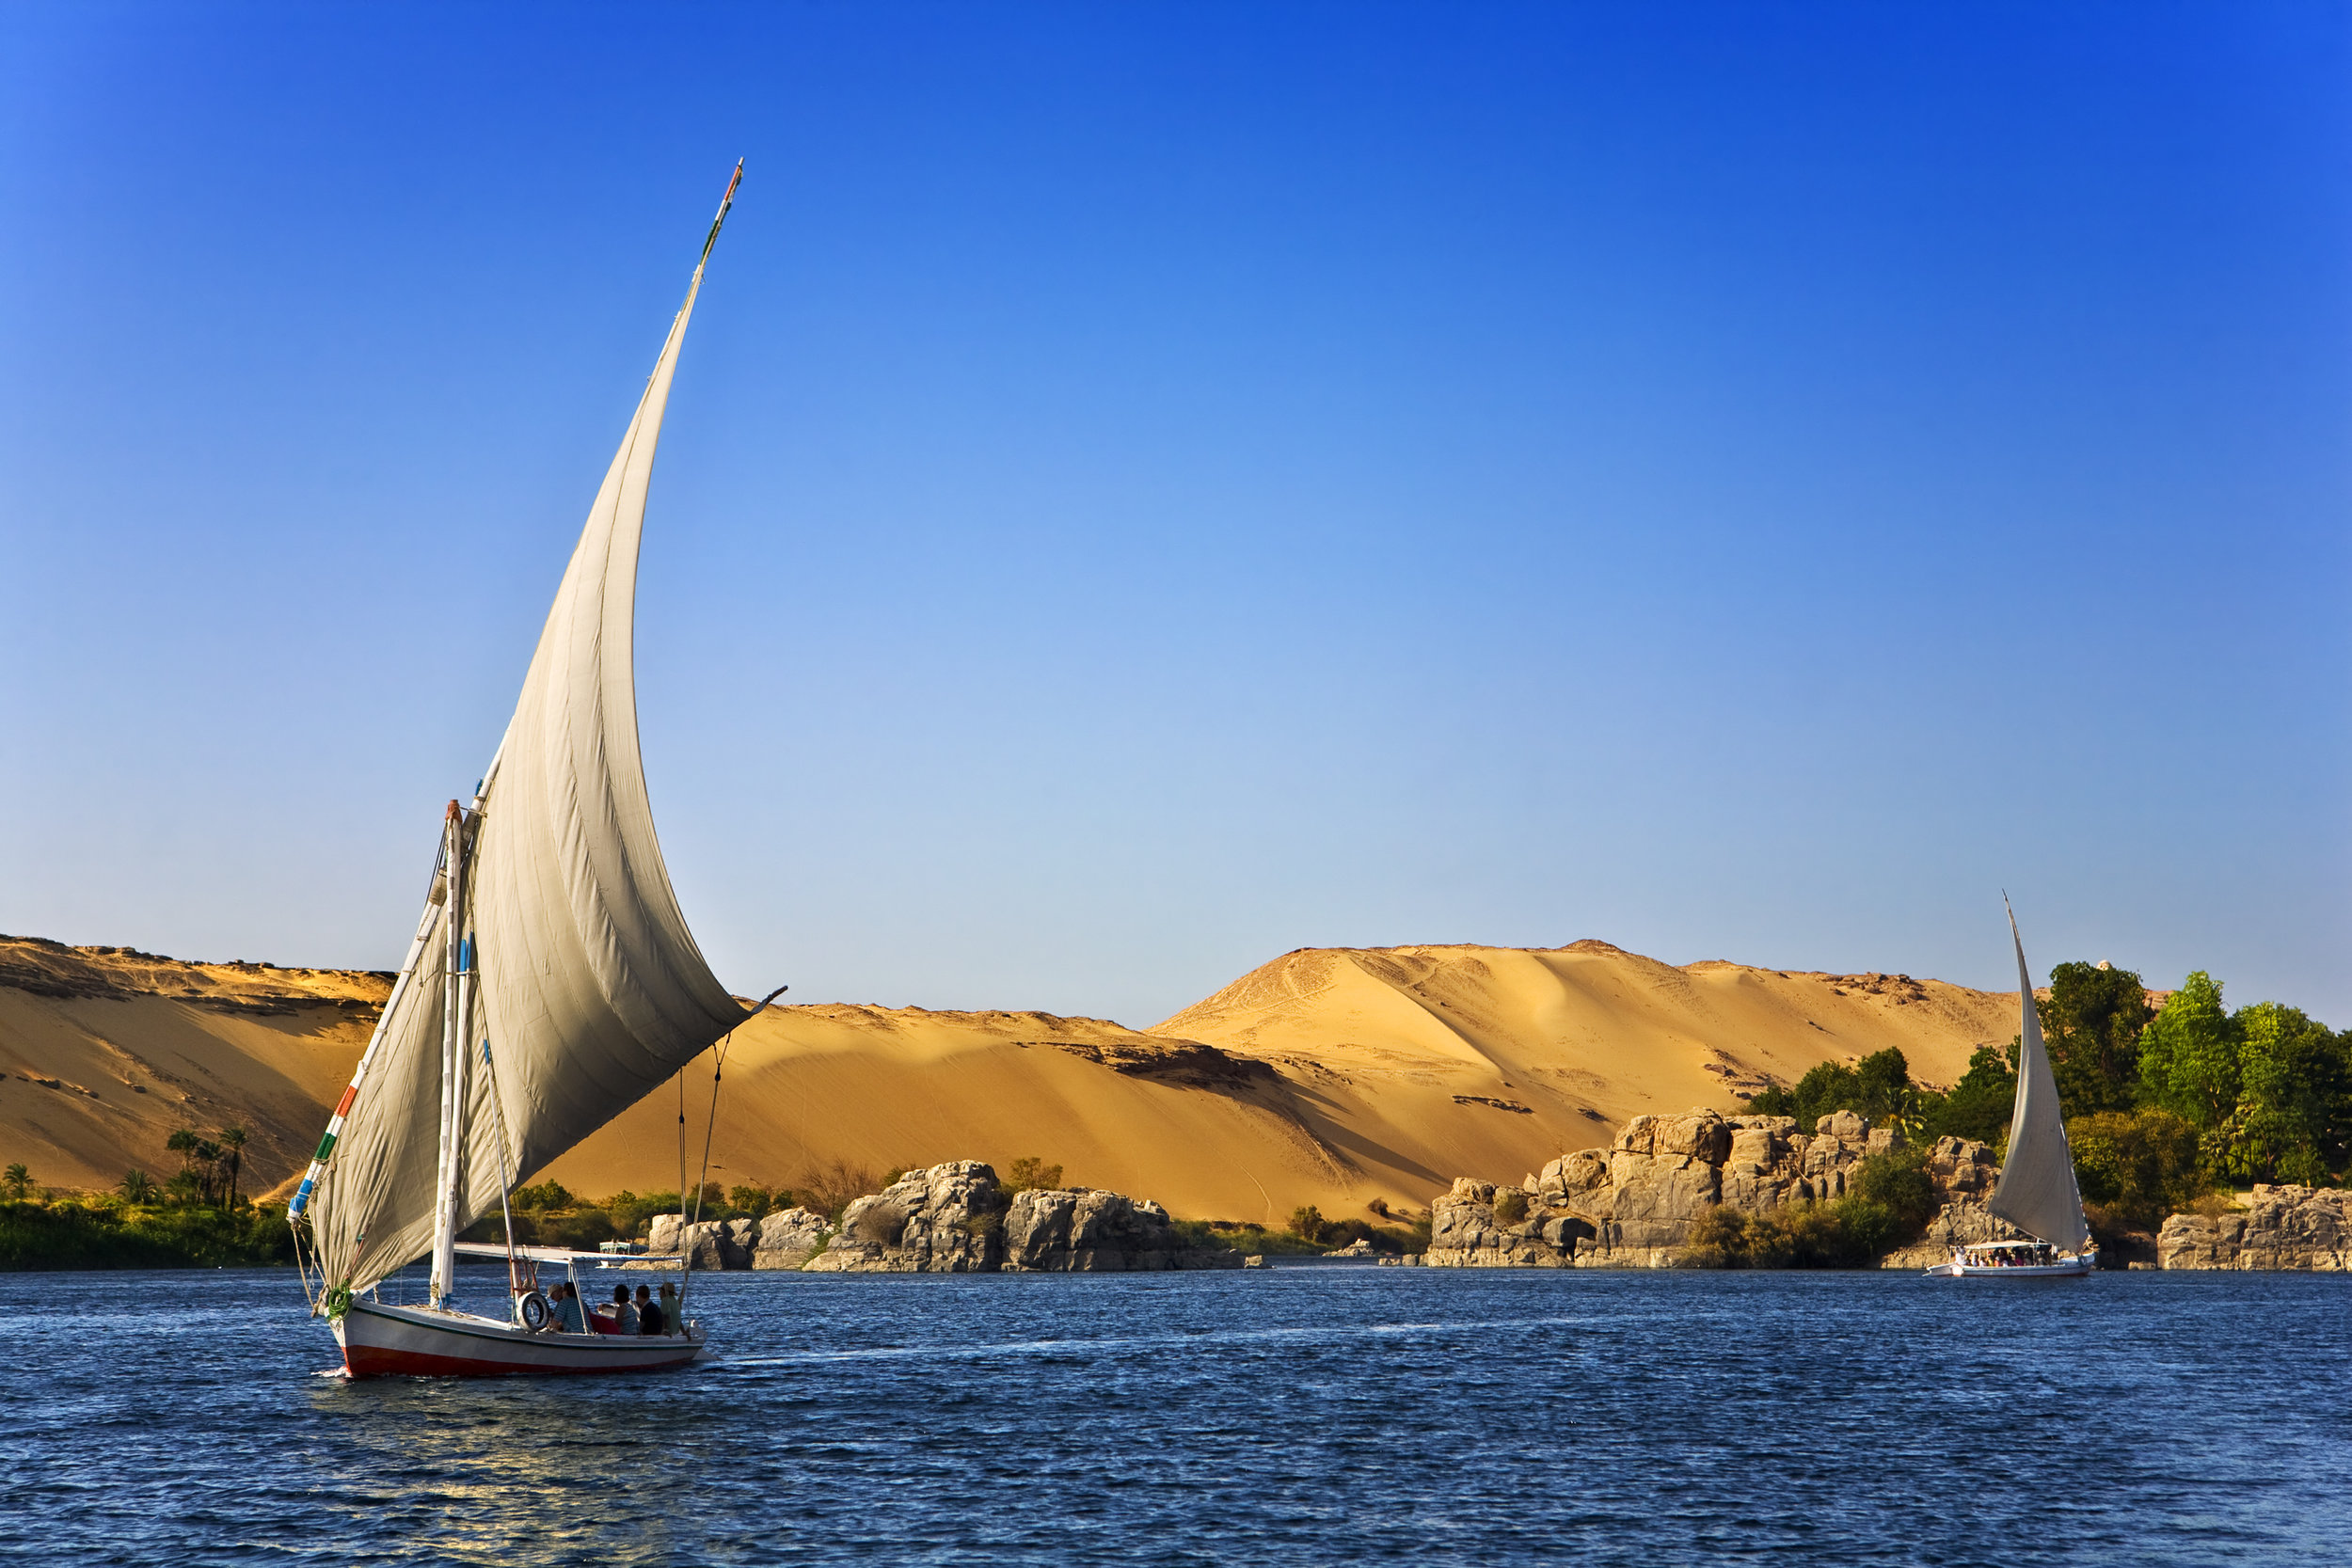 Egypt Adventure - Travel to Egypt and follow the path of the River Nile as you revel in a taste of Egypt's history, beauty and colour on this short but action-packed trip along the longest river in the world.7 nights from $1,364*(NZD)Travel Period: Selected travel dates and subject to tour timings